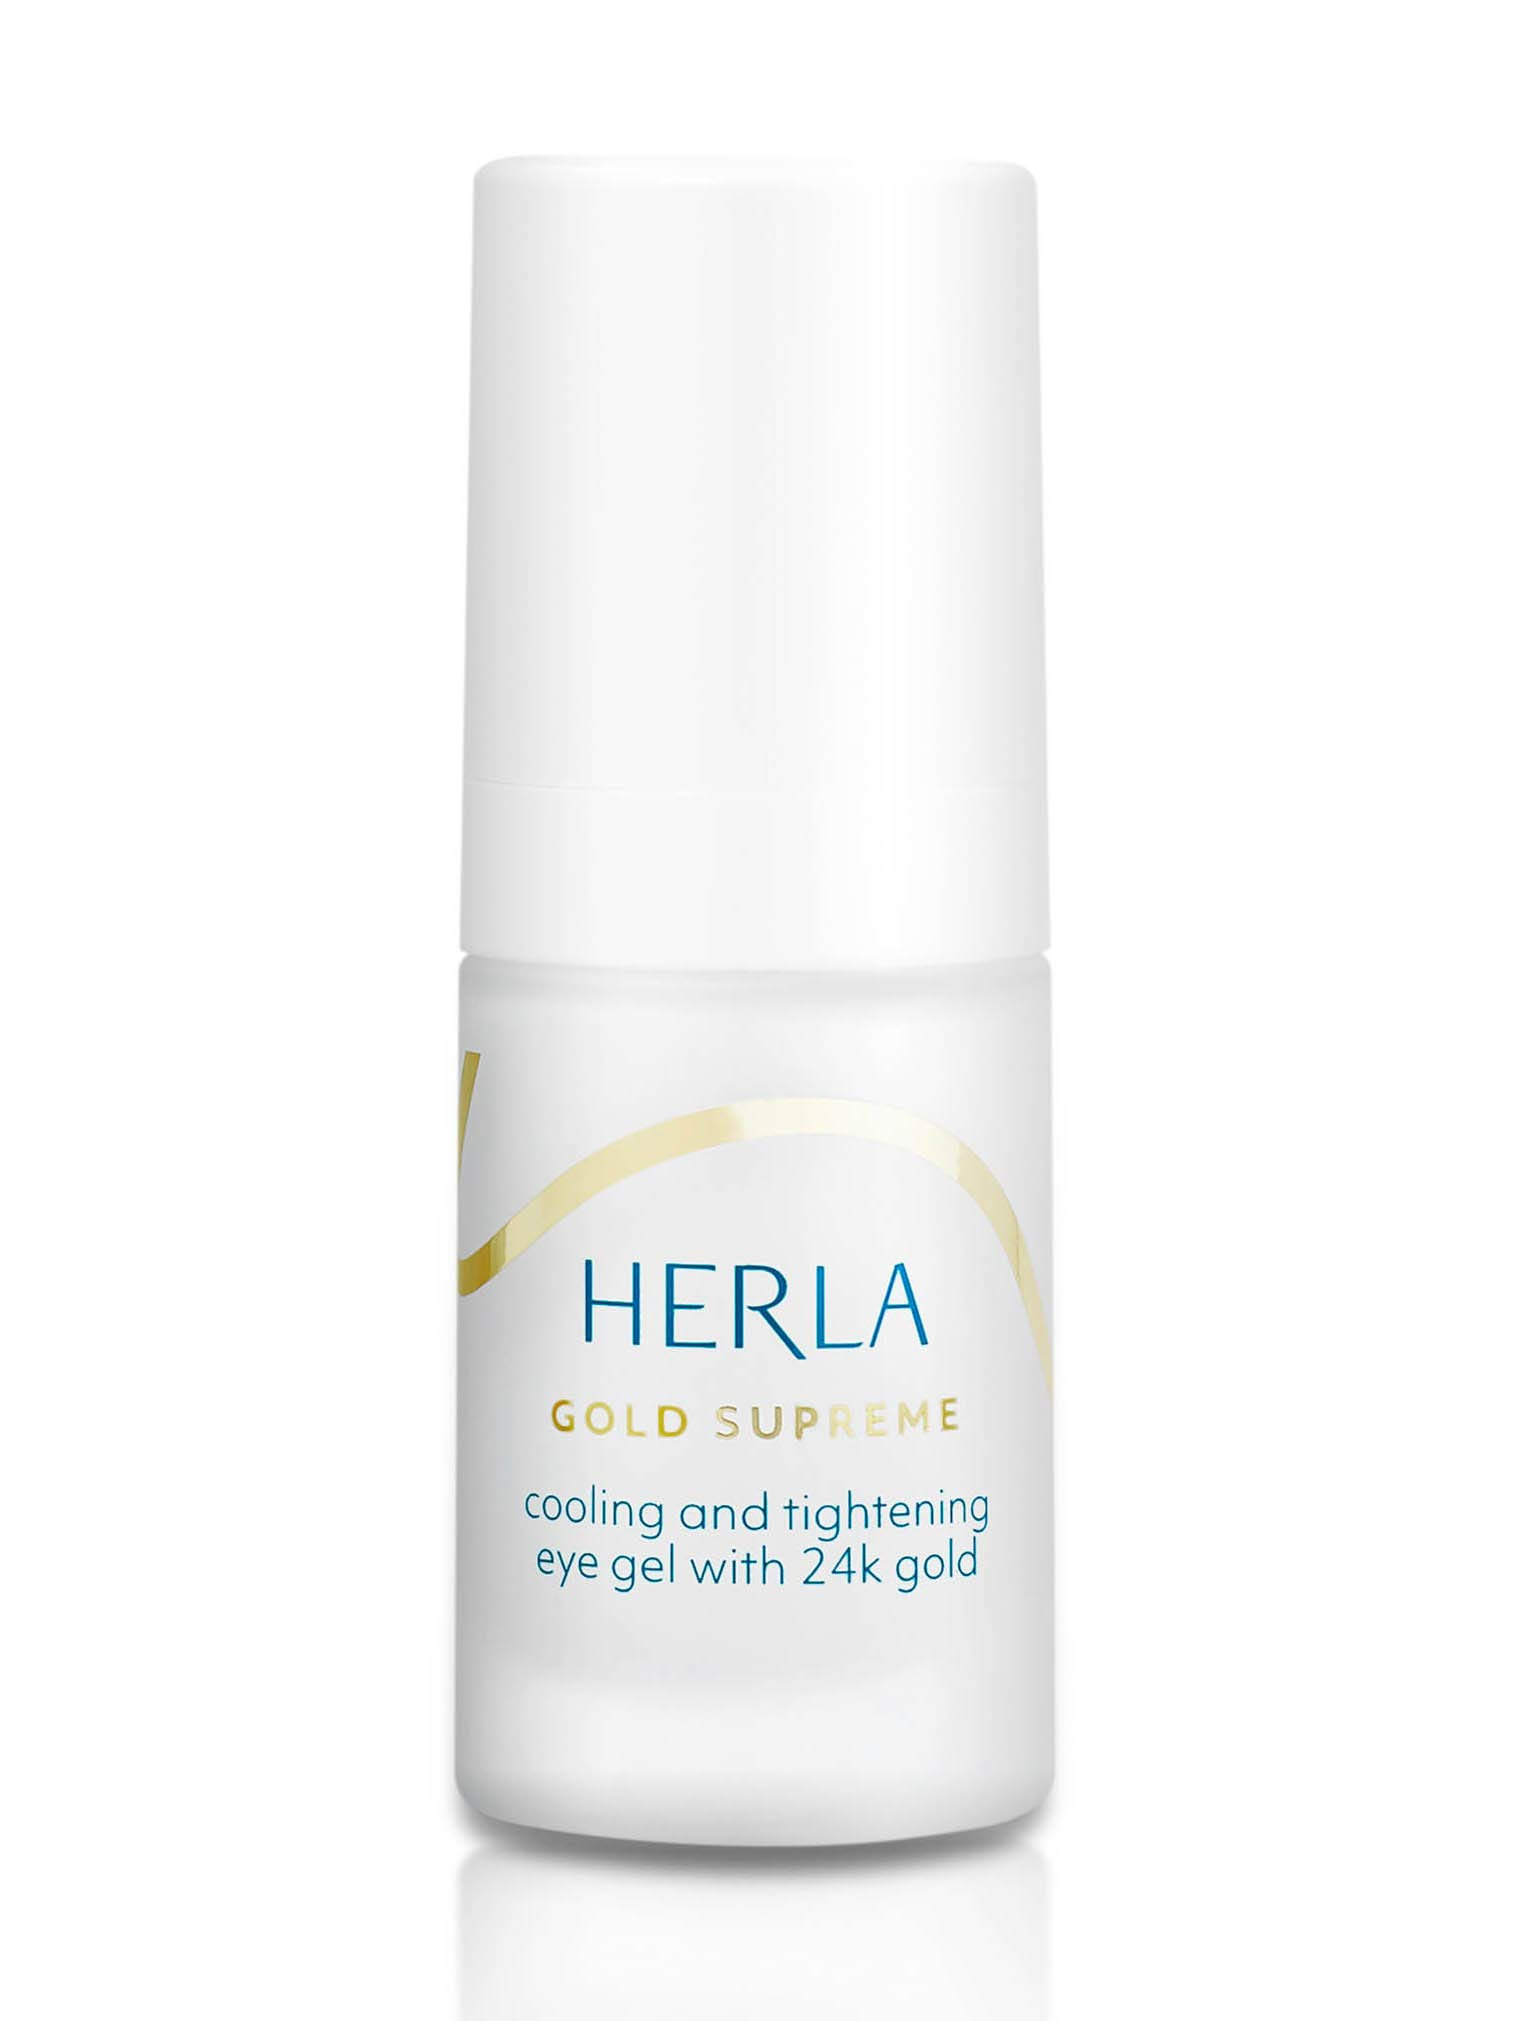 Herla Beauty - Gold Supreme Line | Cooling and Tightening Eye Gel with 24k Gold - Lifts and Brightens Skin